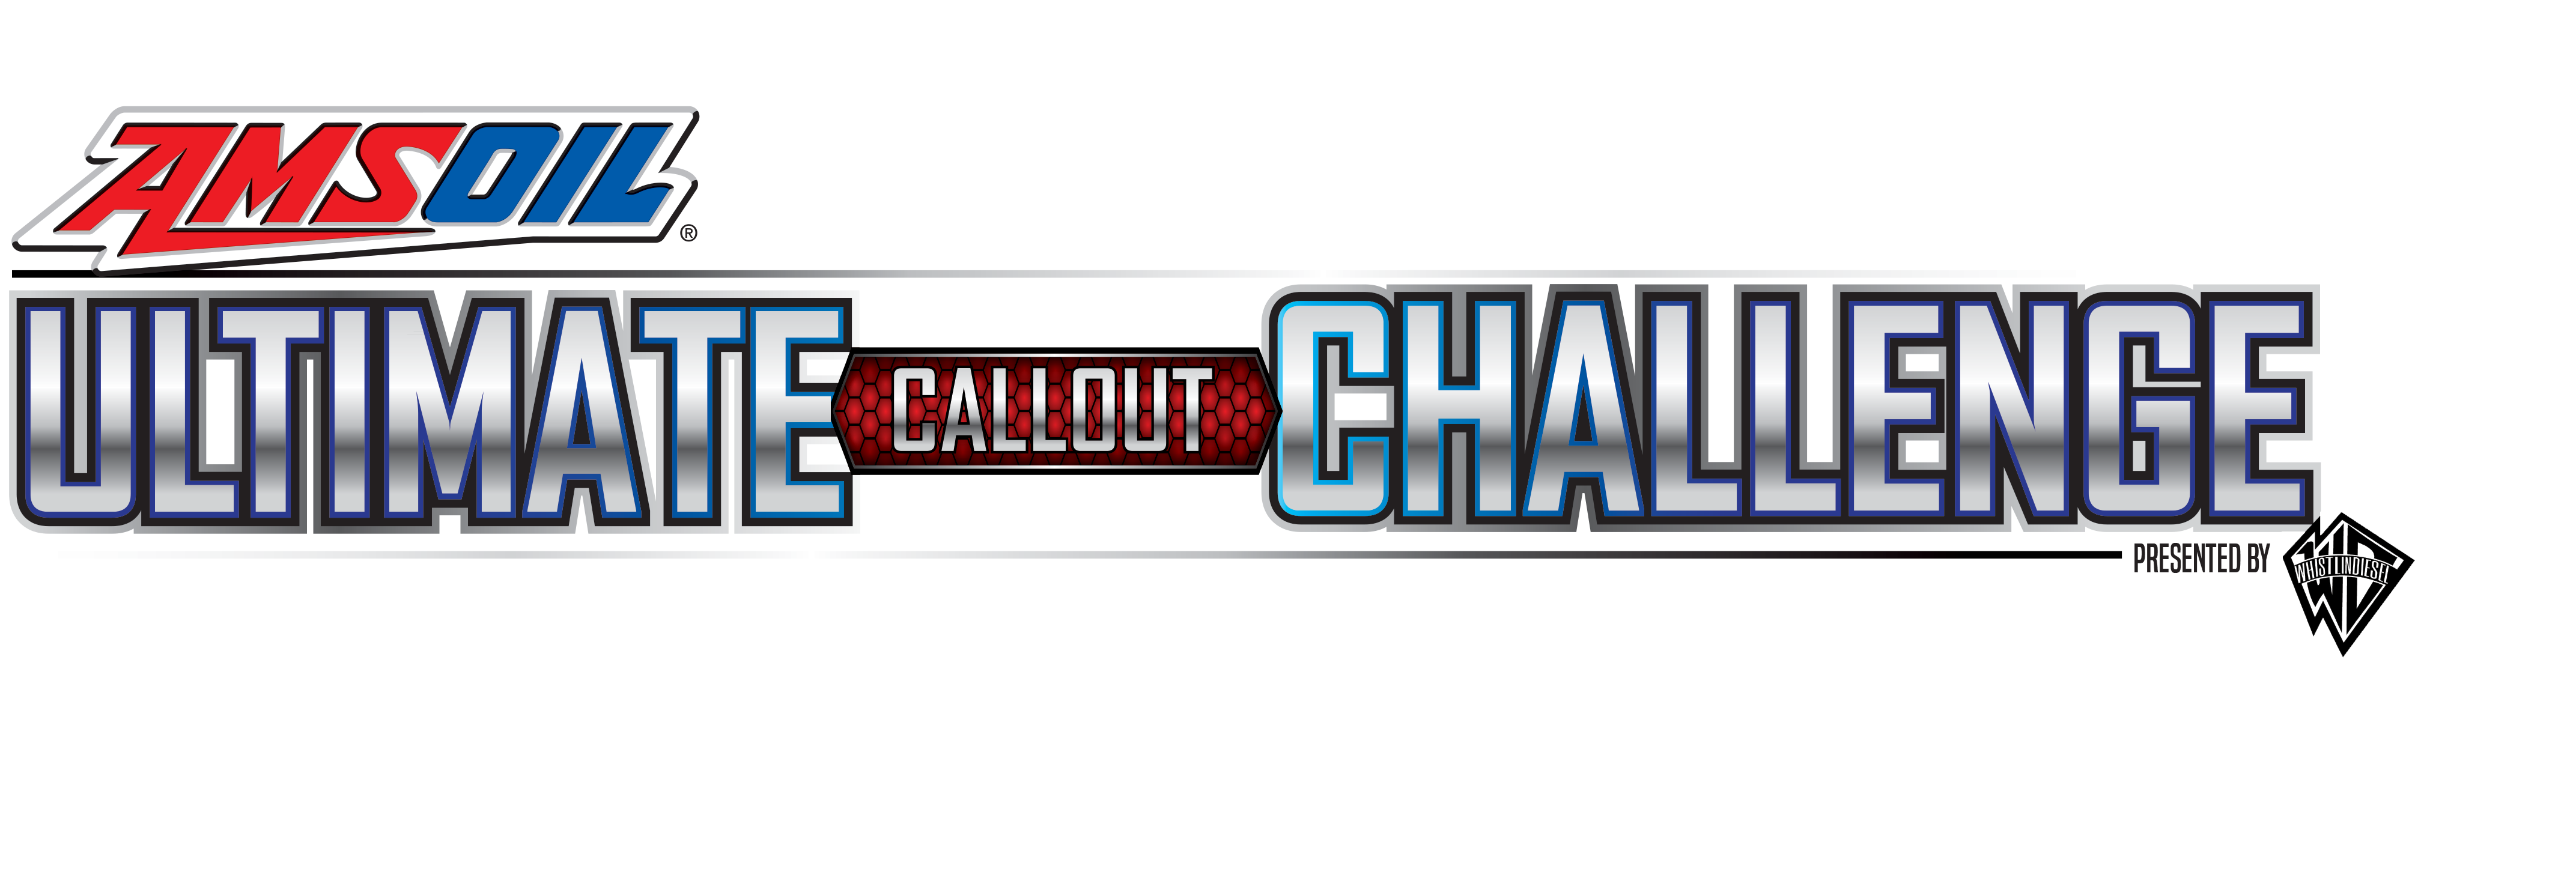 2021 UCC Rules | Ultimate Callout Challenge